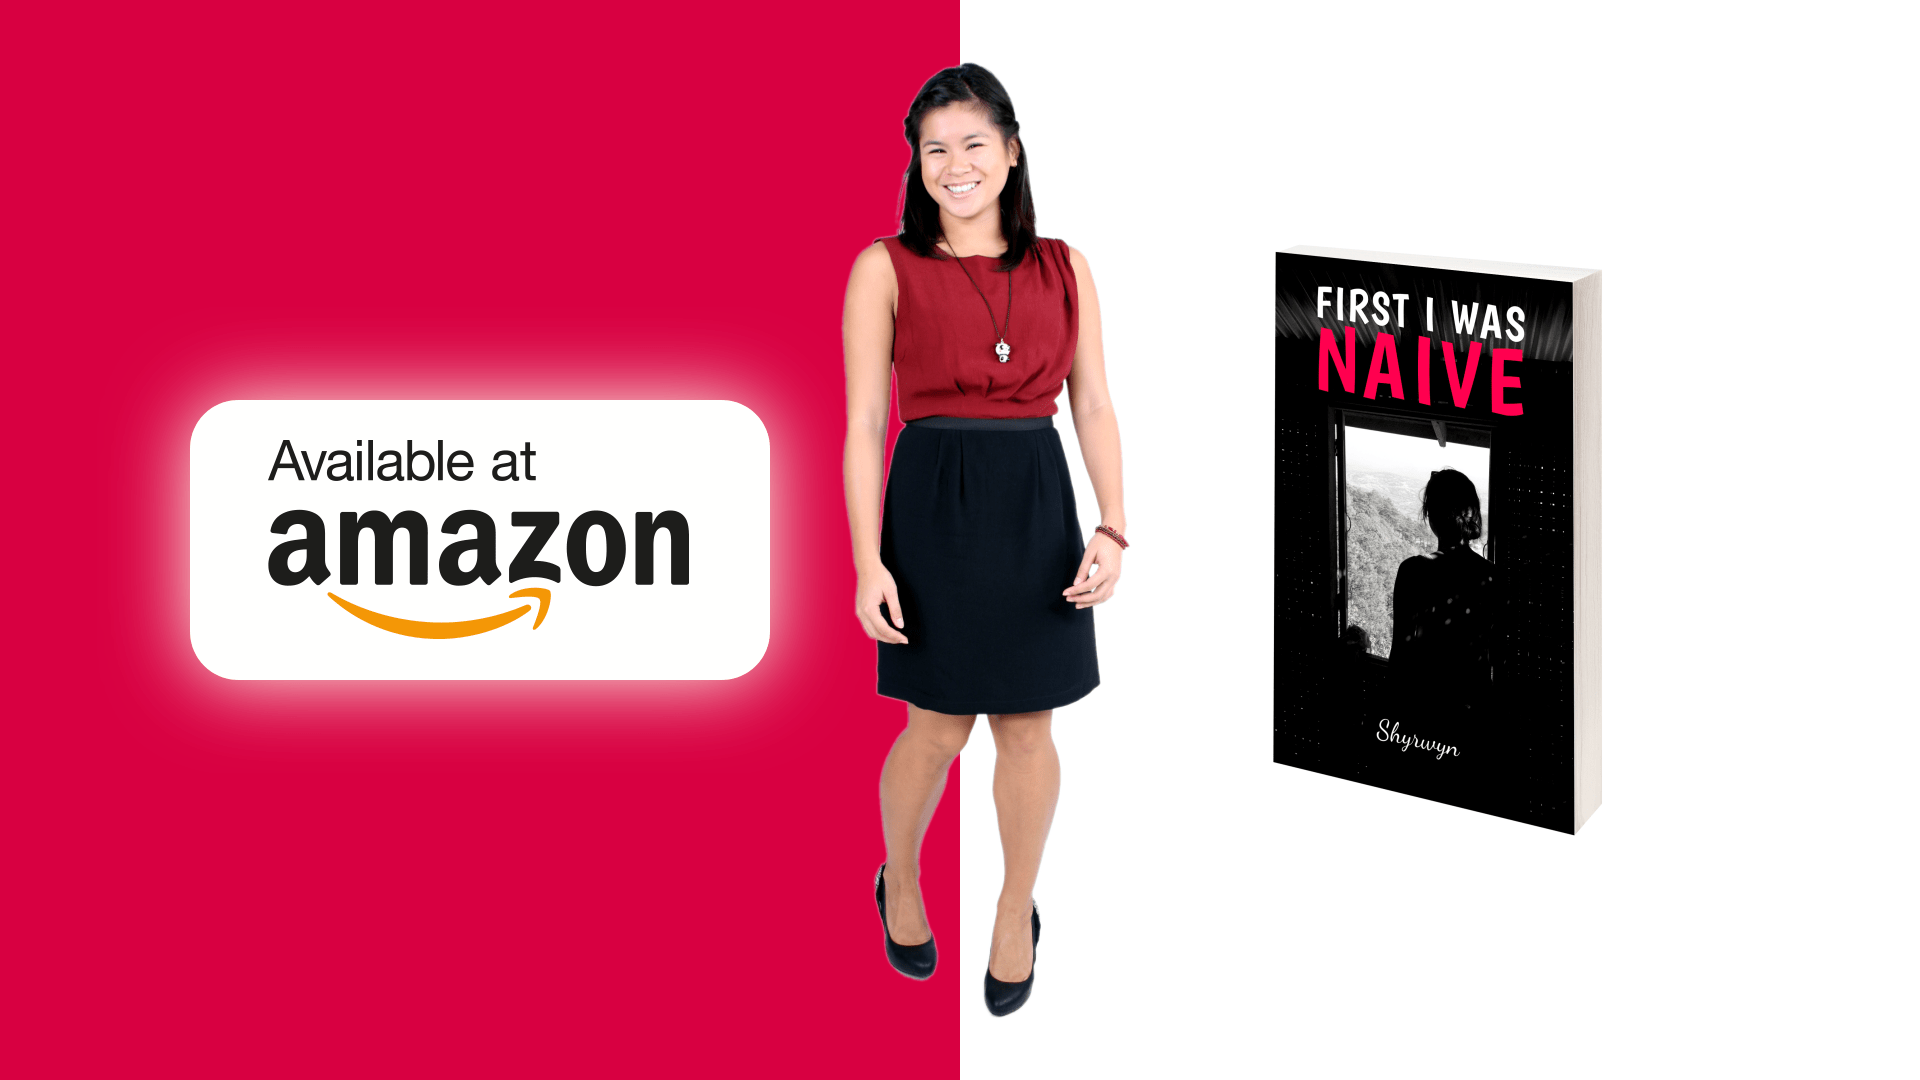 First I Was Naive (book) by Shyrwyn Clemente - Available at Amazon.com: https://www.amazon.com/dp/B077XLWT8G